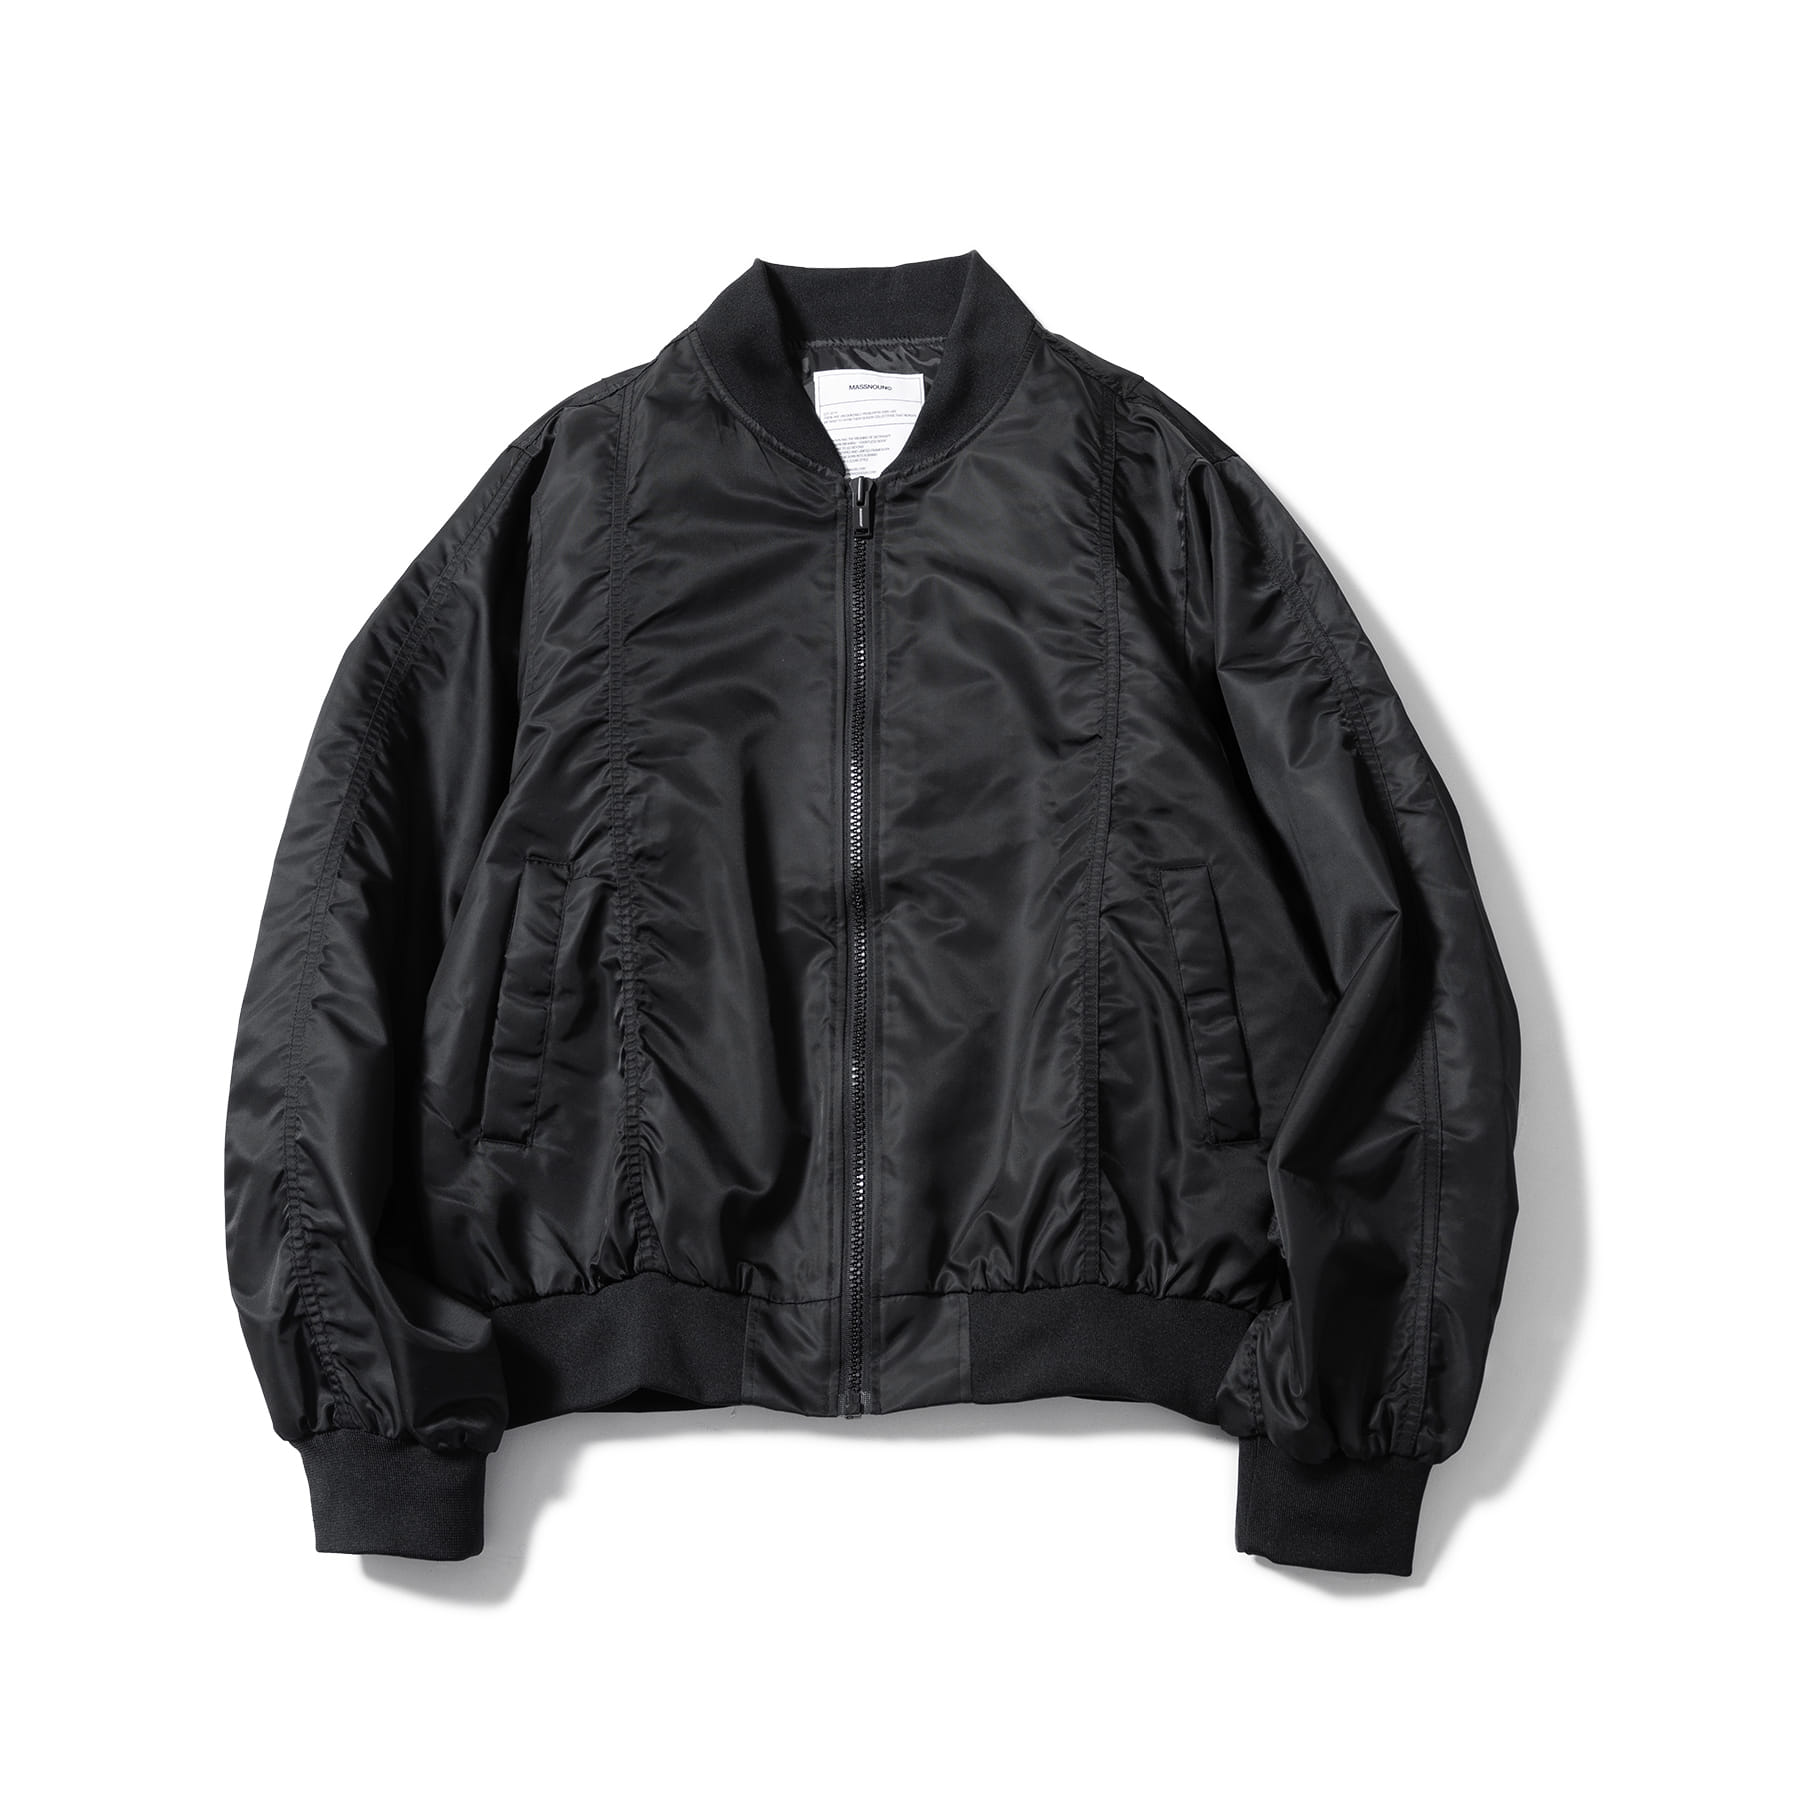 (50%)3M SCOTCH BACK ZIPPER MA-1 OVERSIZED JACKET MSOPD001-BK